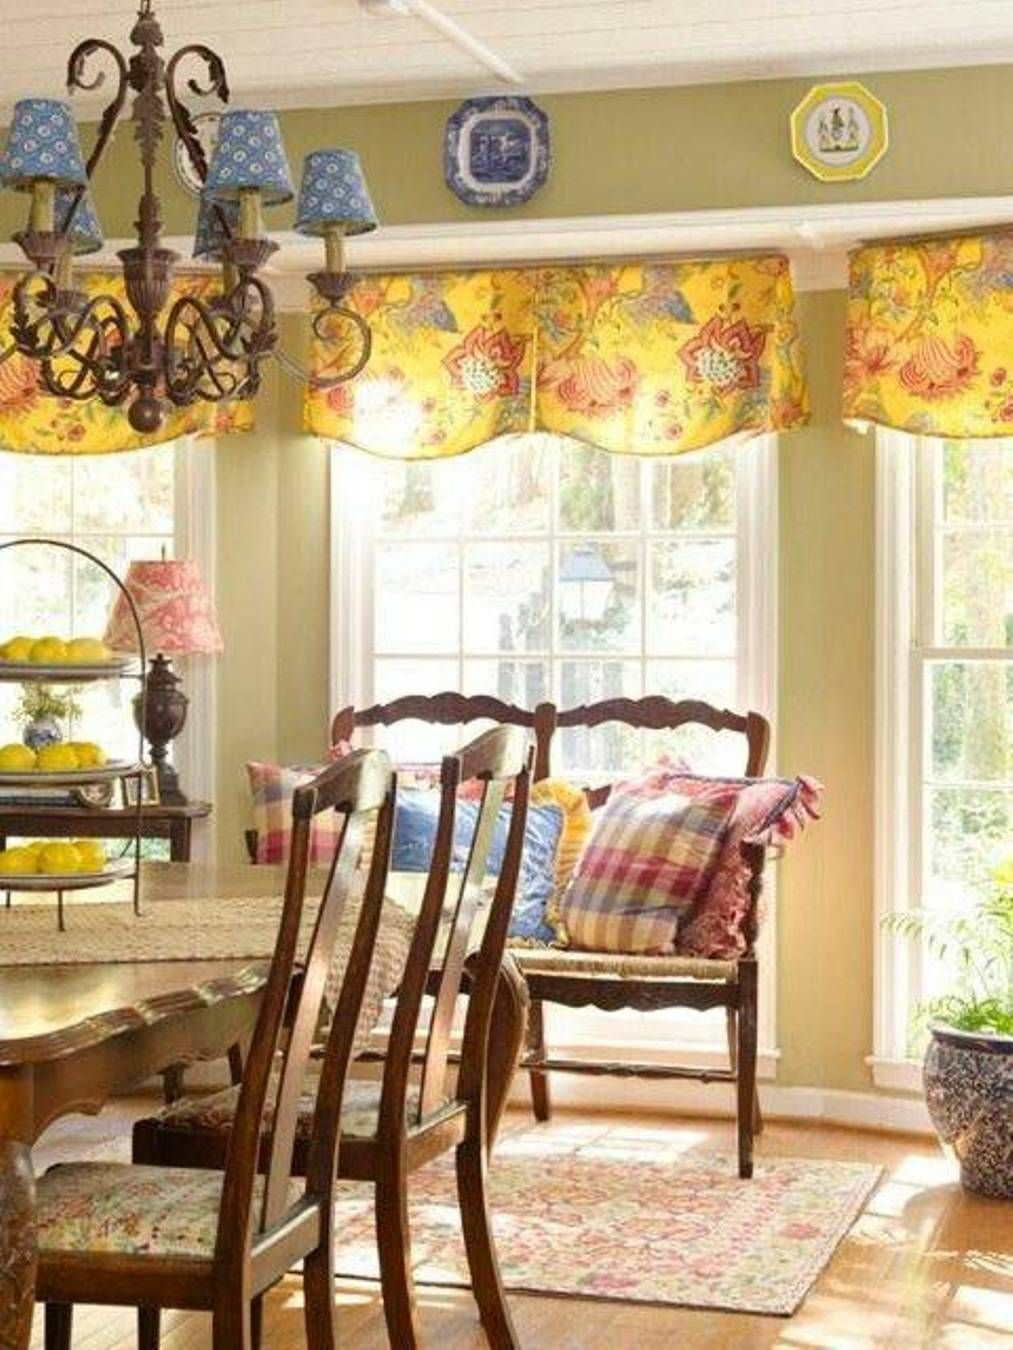 Dining room french country dining room decorating ideas french country dining room ideas - Country dining room pictures ...